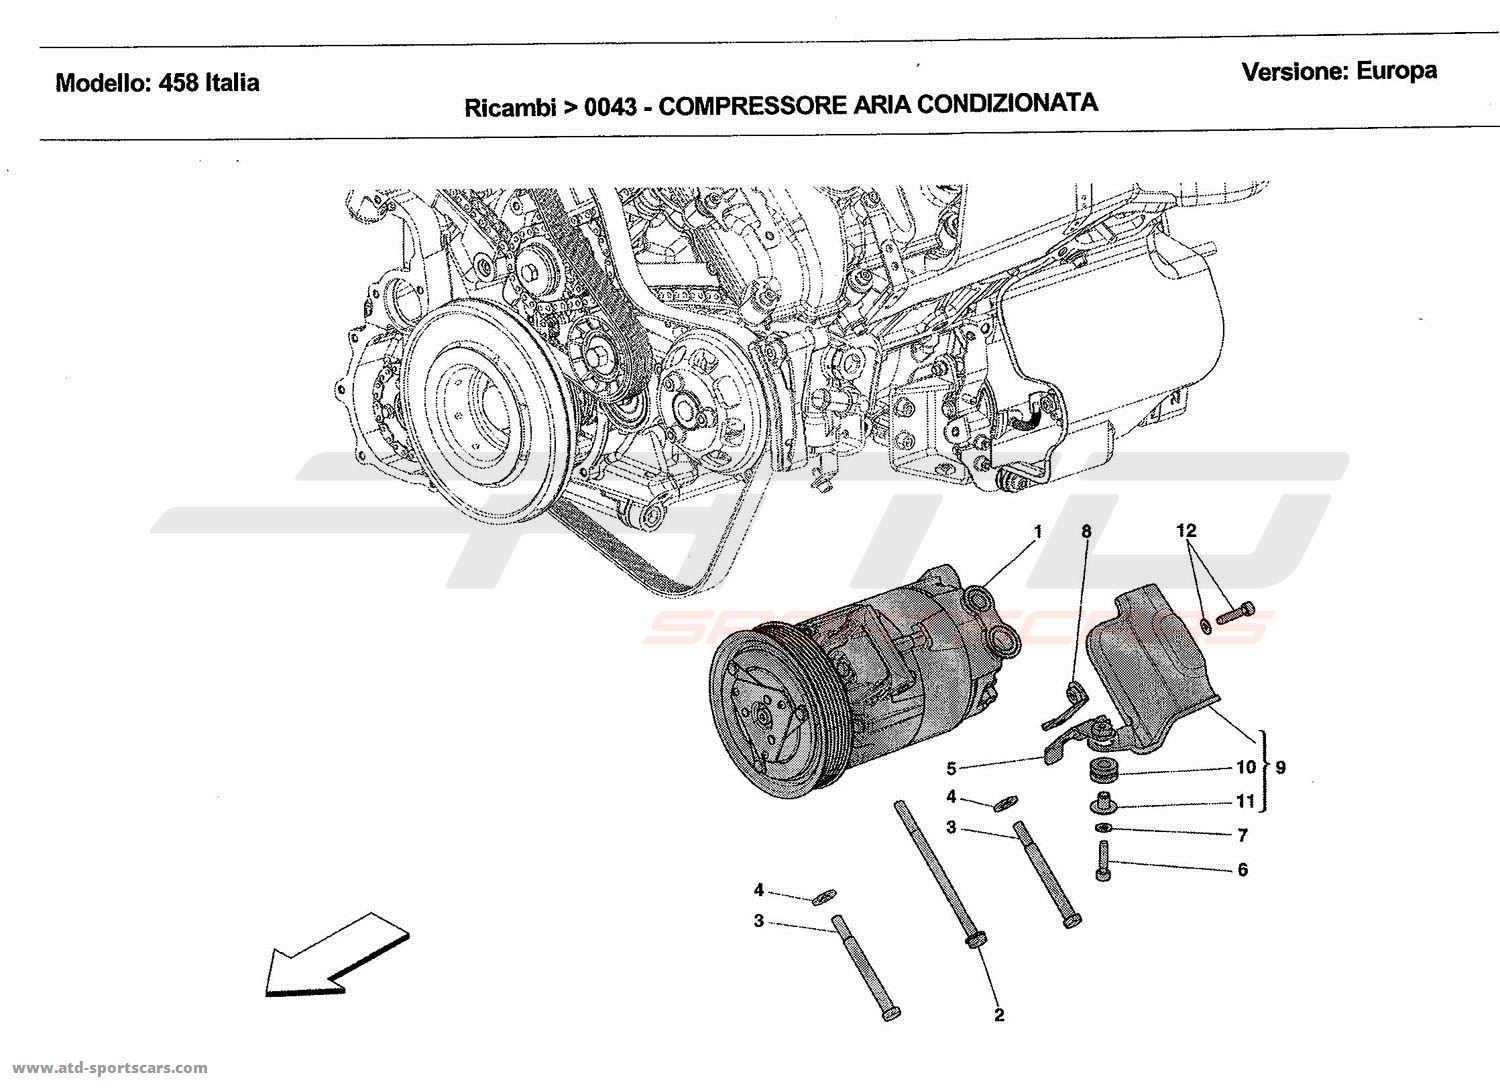 honda odyssey used parts auto parts diagrams